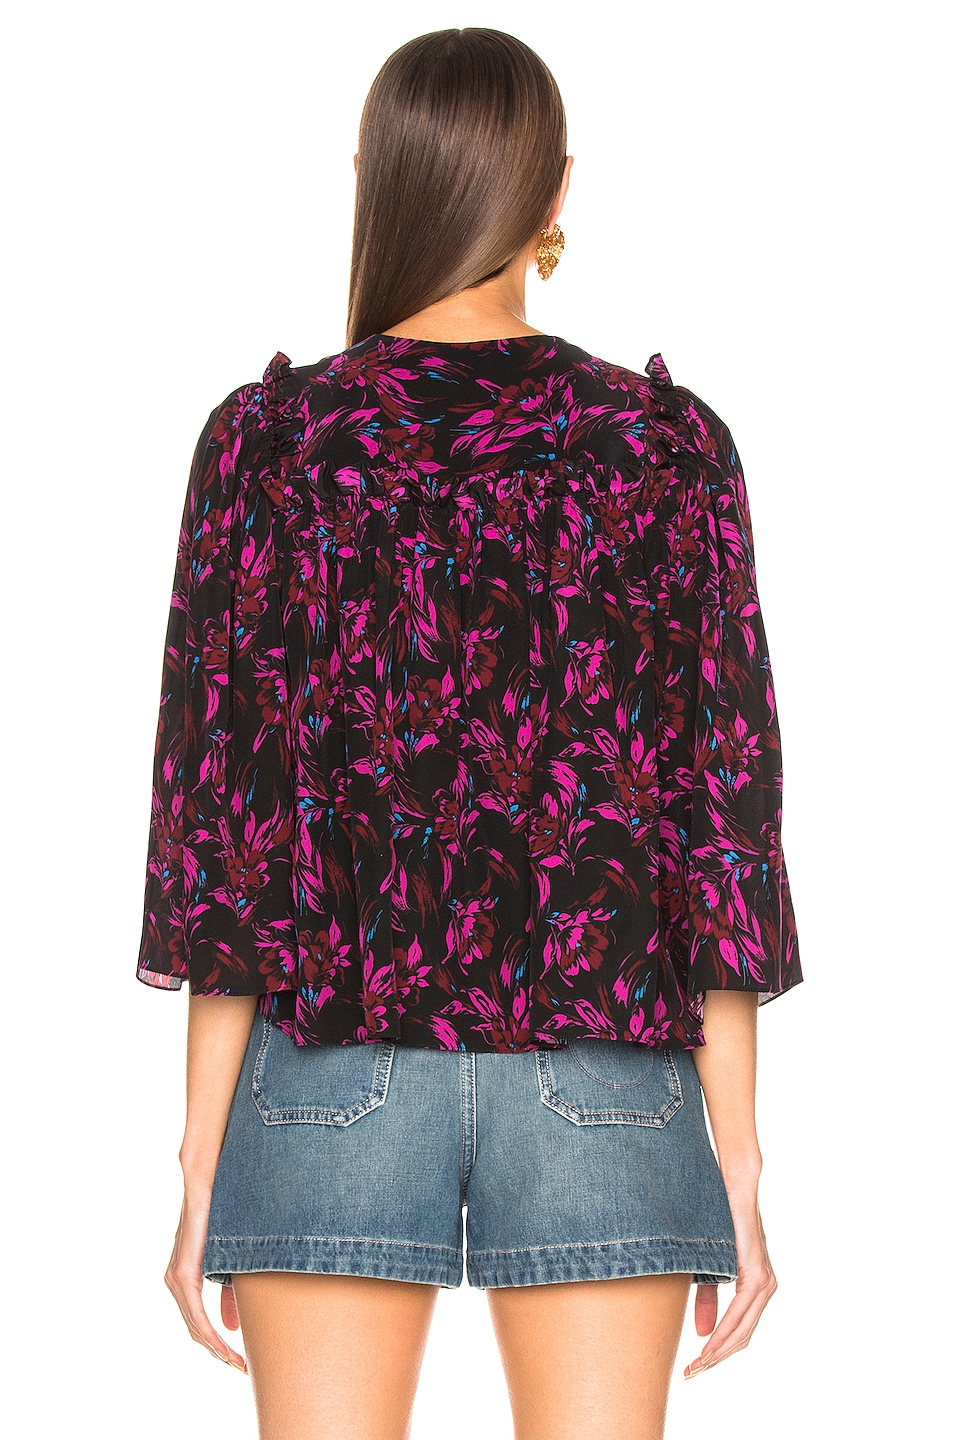 Image 3 of Les Reveries Tie Front Top in Wispy Floral Black